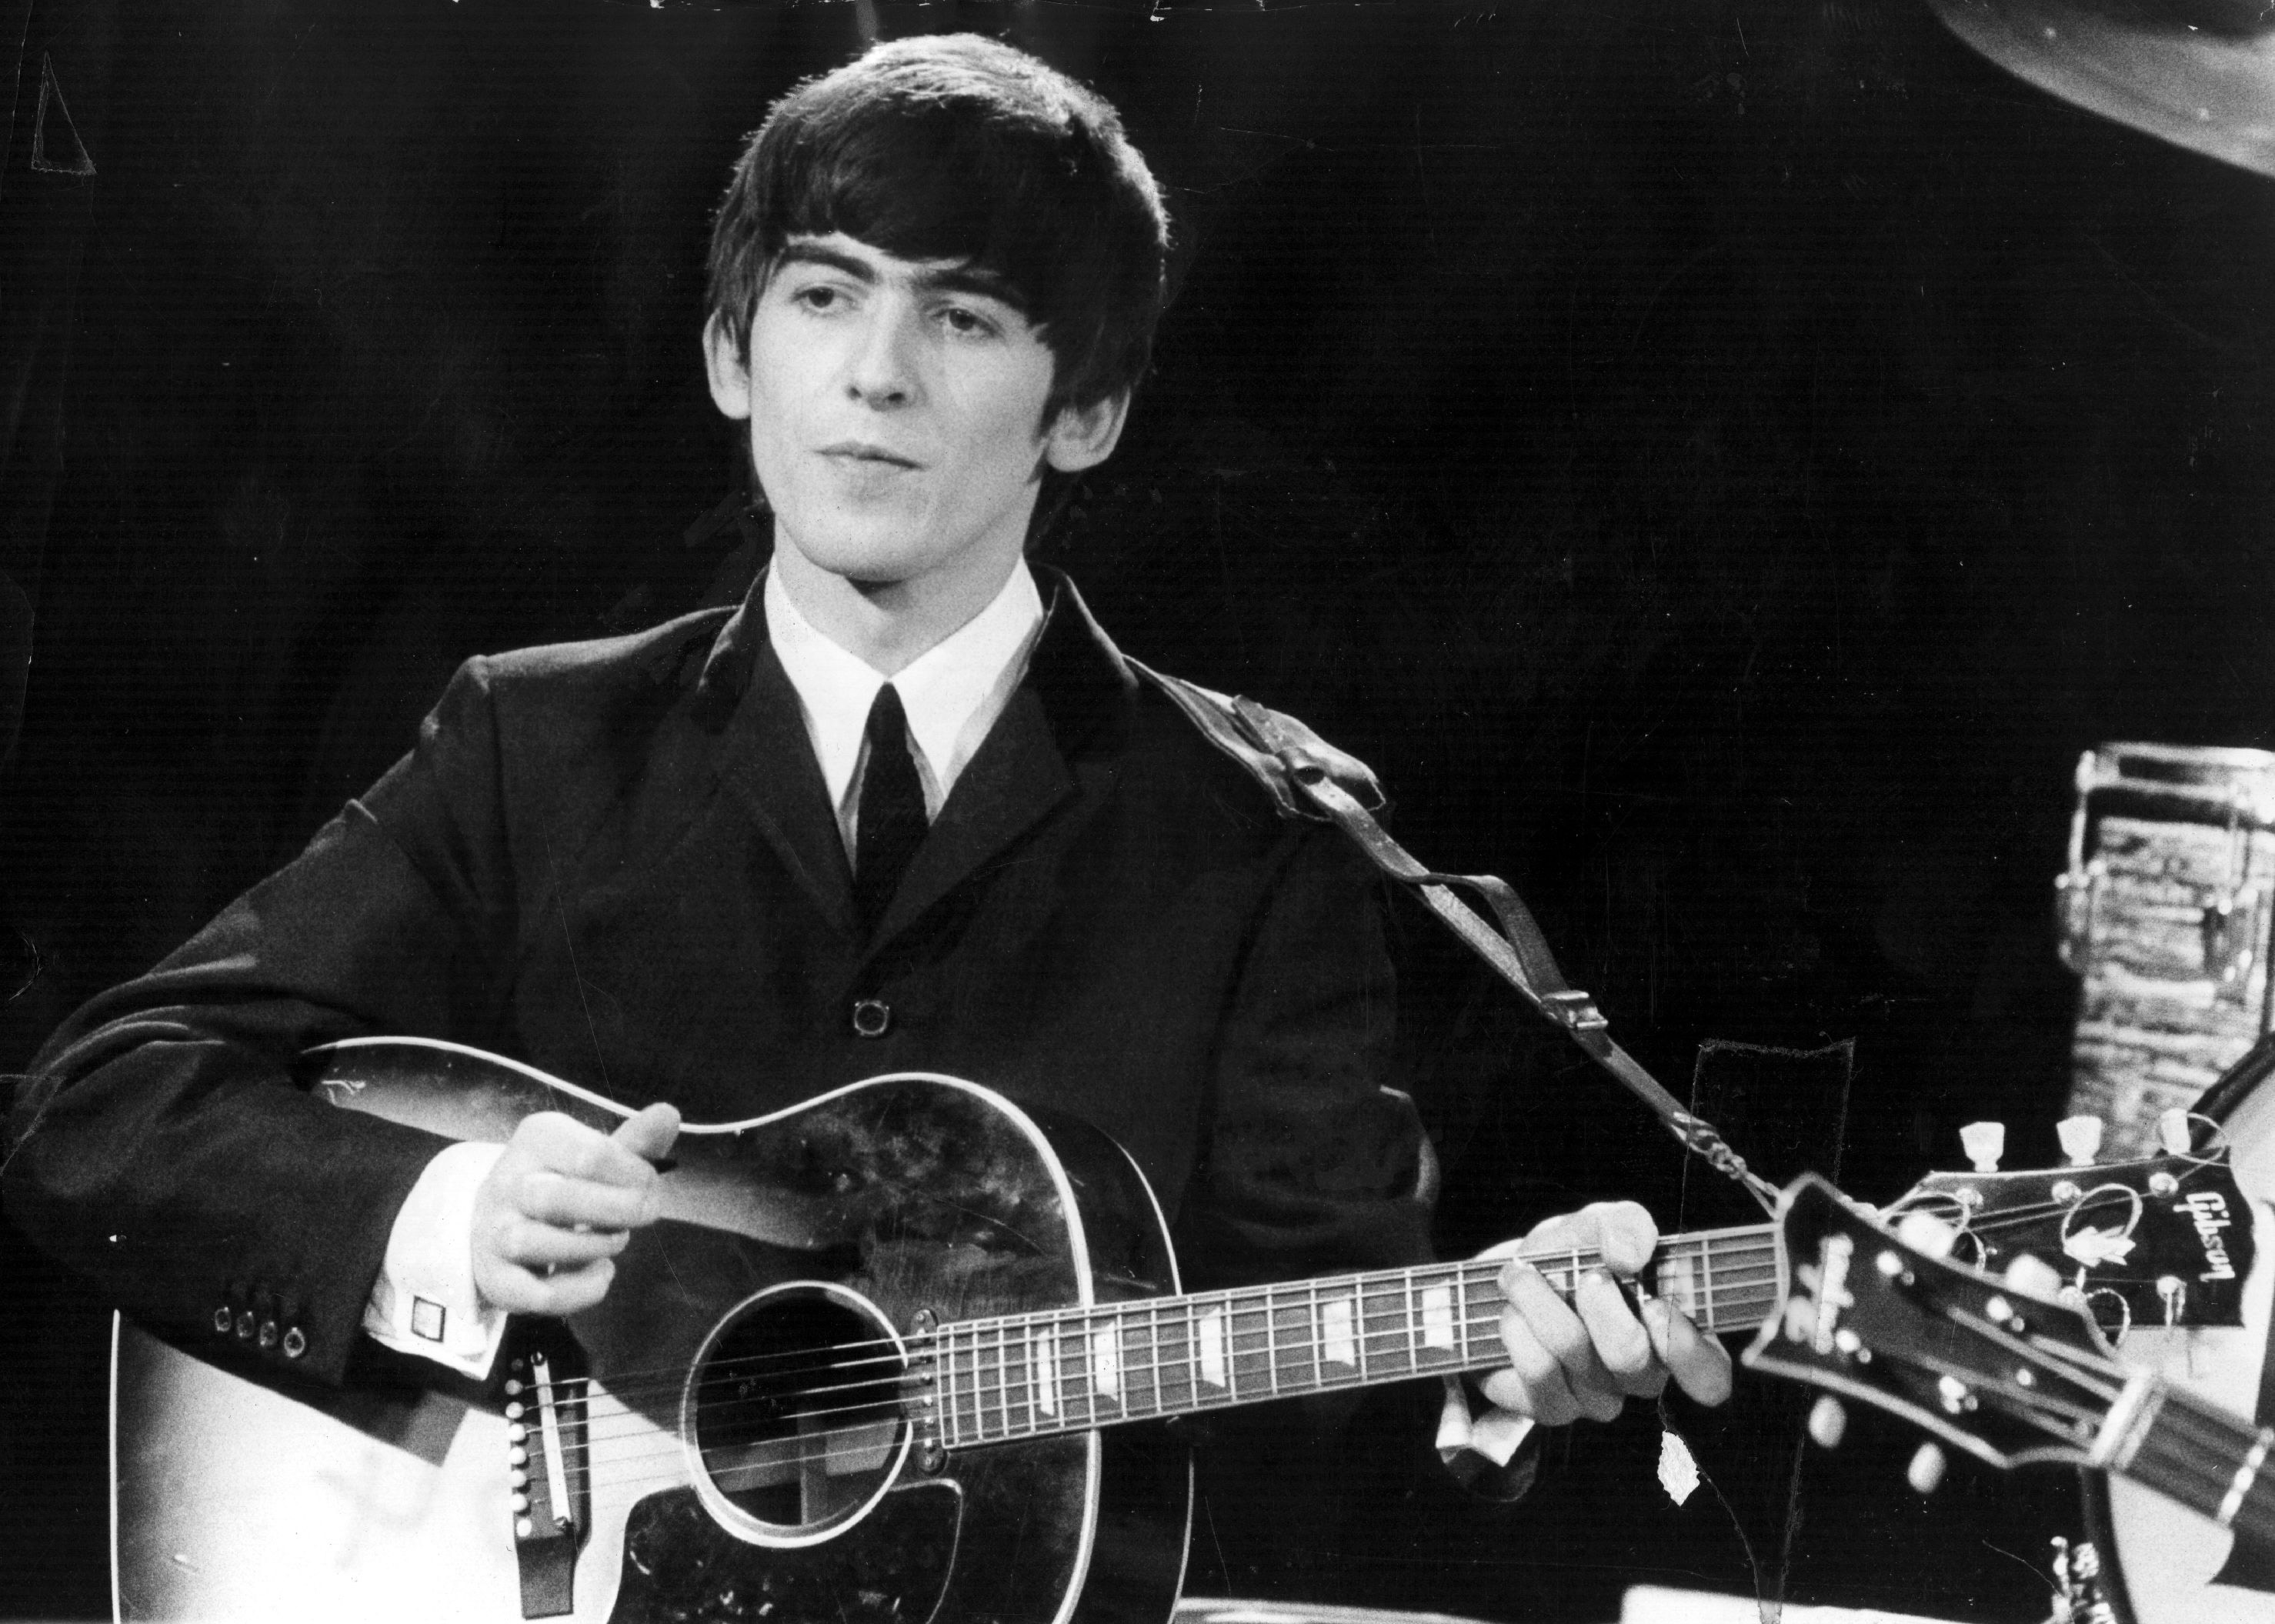 We Had Our Last Real Update About Martin Scorseses Documentary On Beatles Guitarist George Harrison Titled Living In The Material World